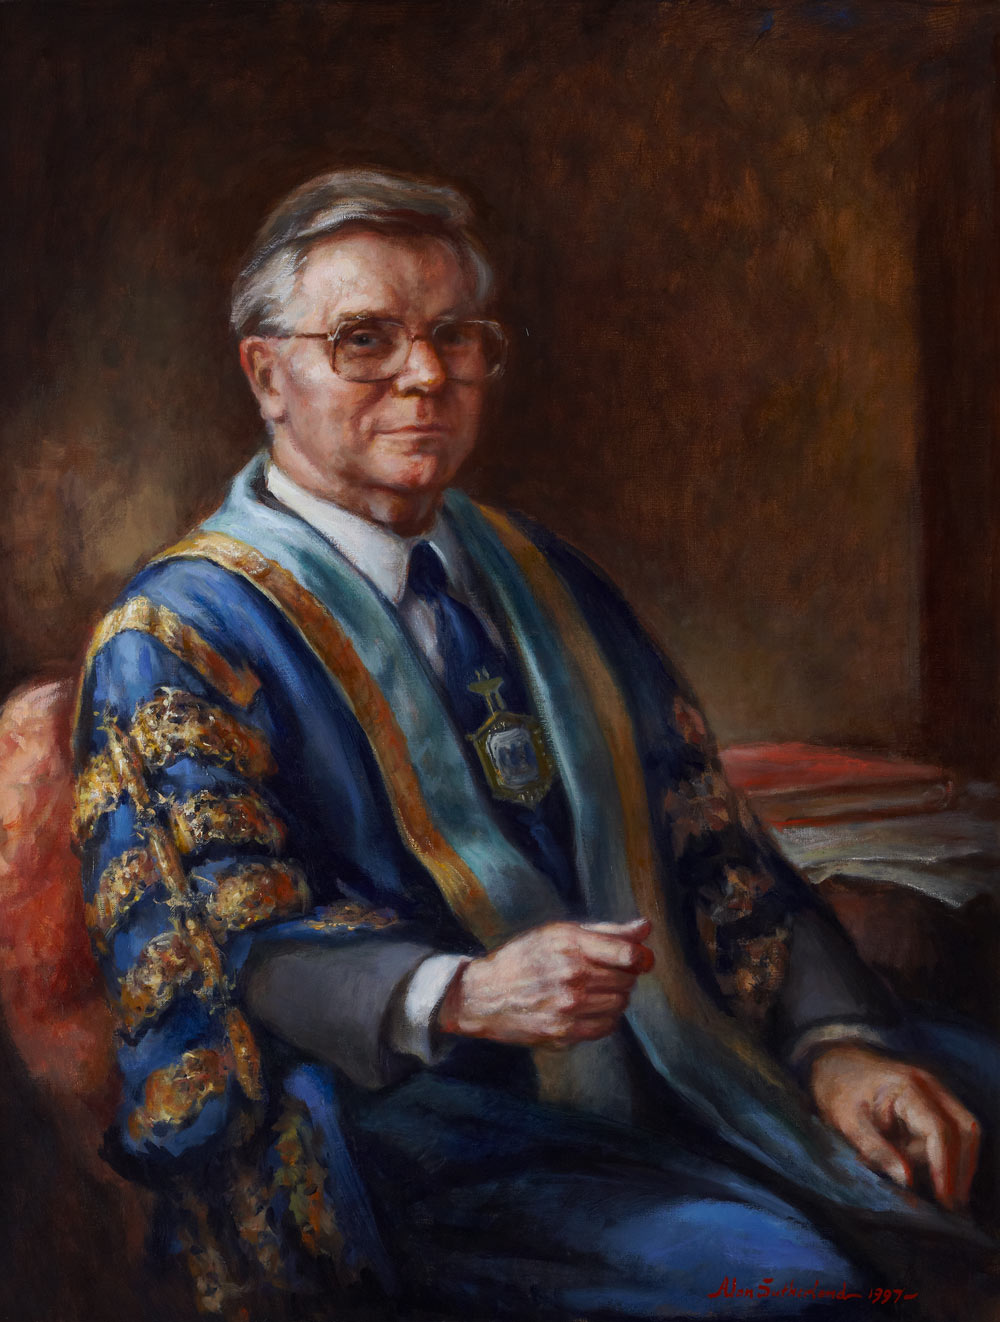 Professor Sir Robert Shields